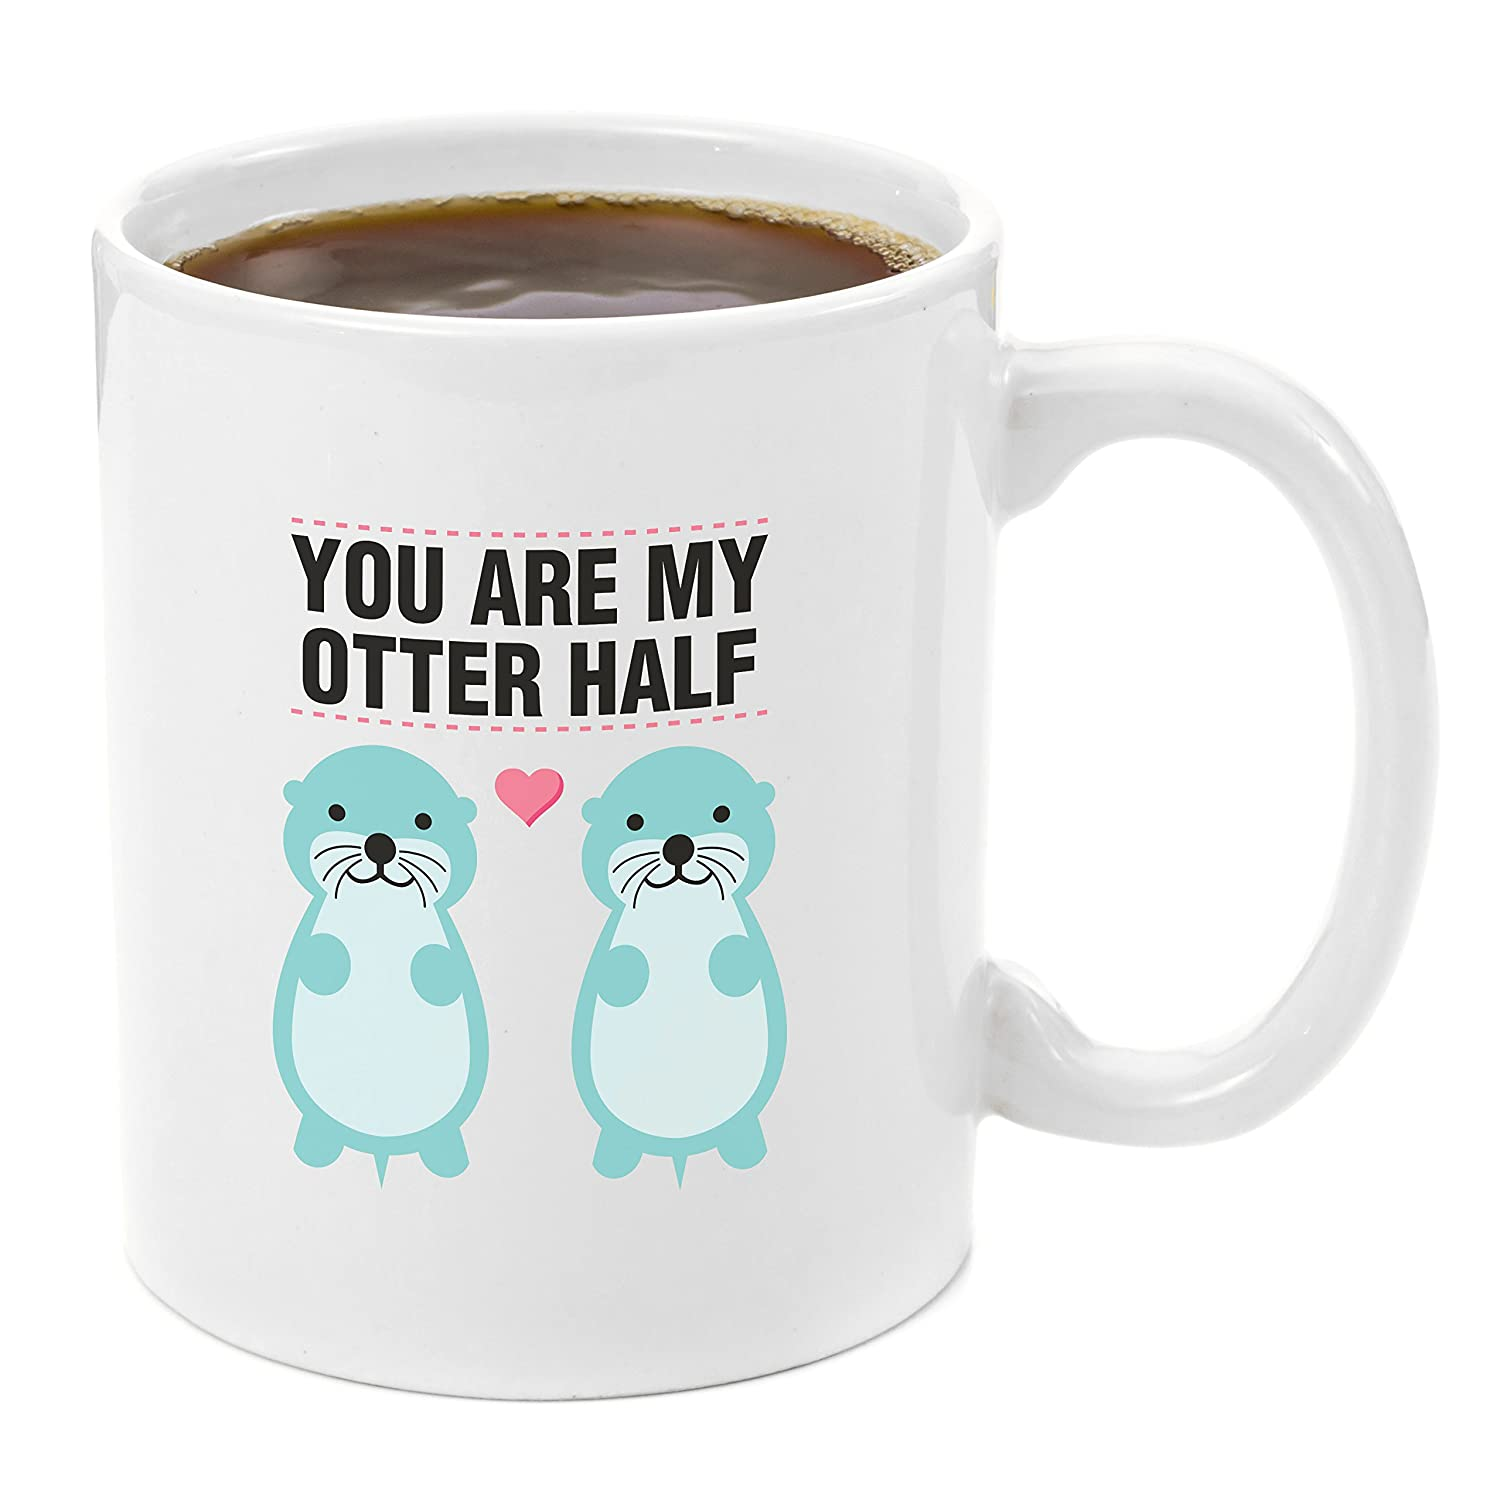 Amazon.com: Otter Half | Coffee Mug 11oz - Anniversary gifts for Her ...